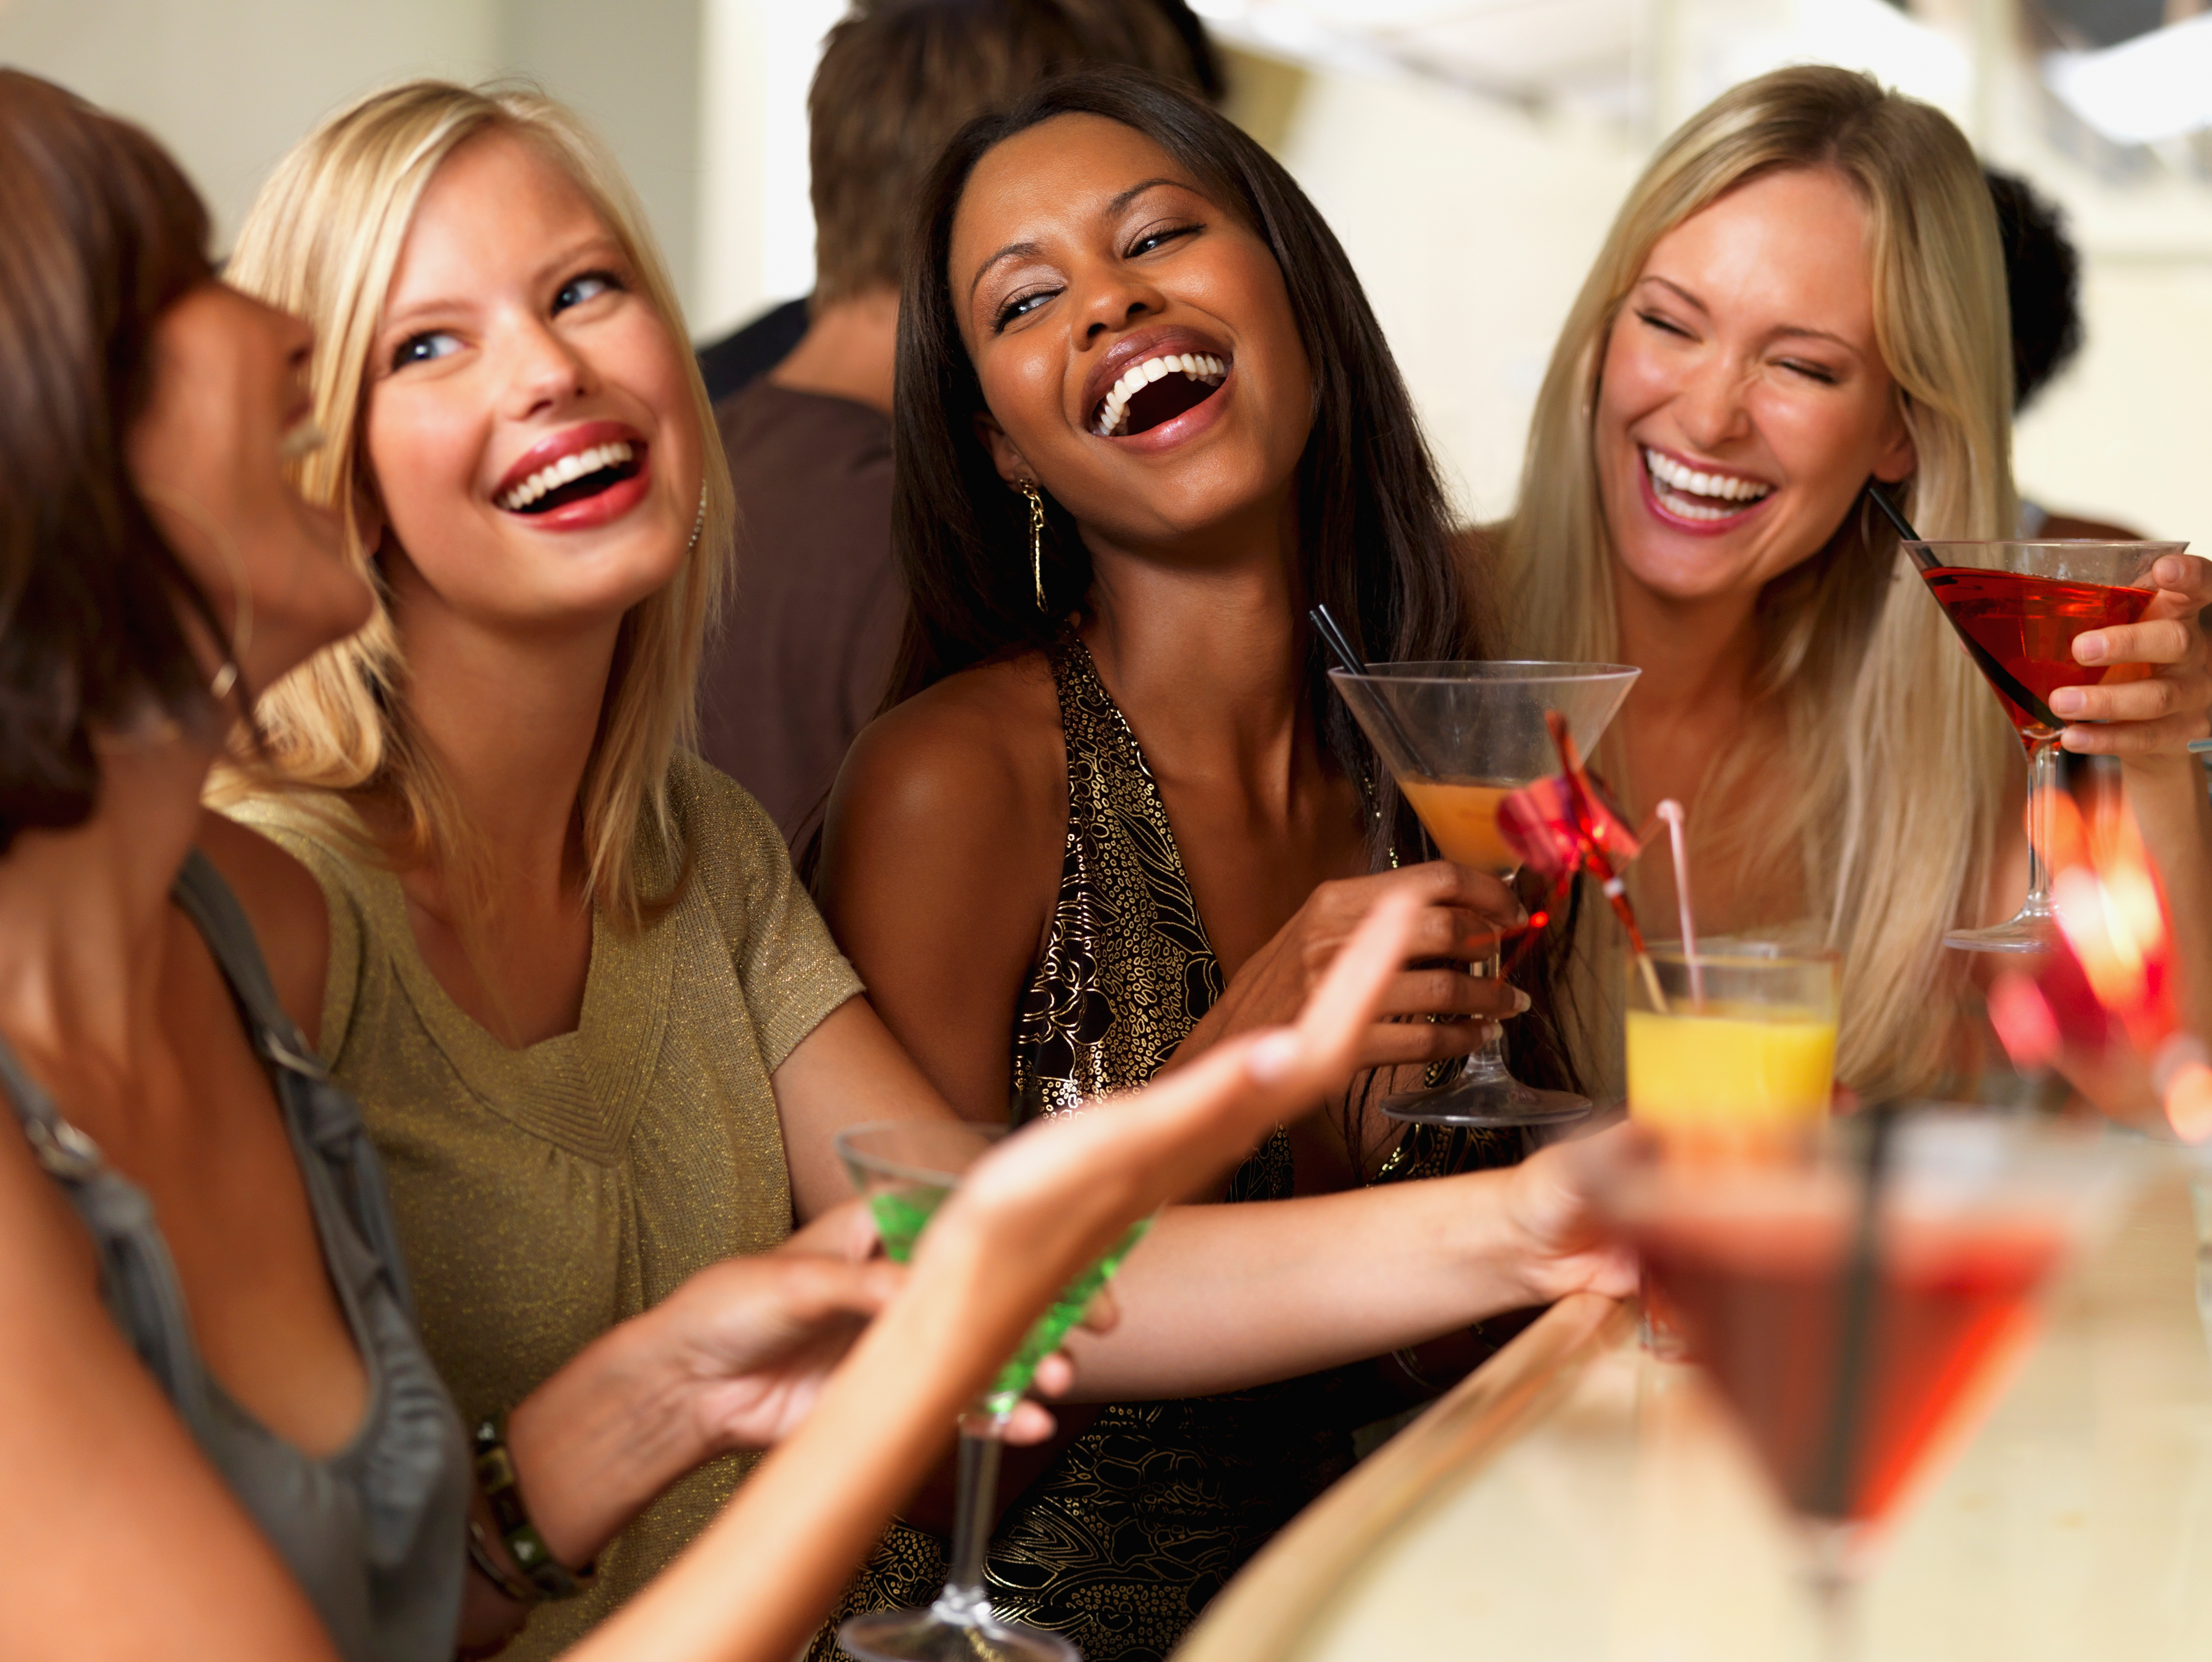 Party girls jpg young girl excited